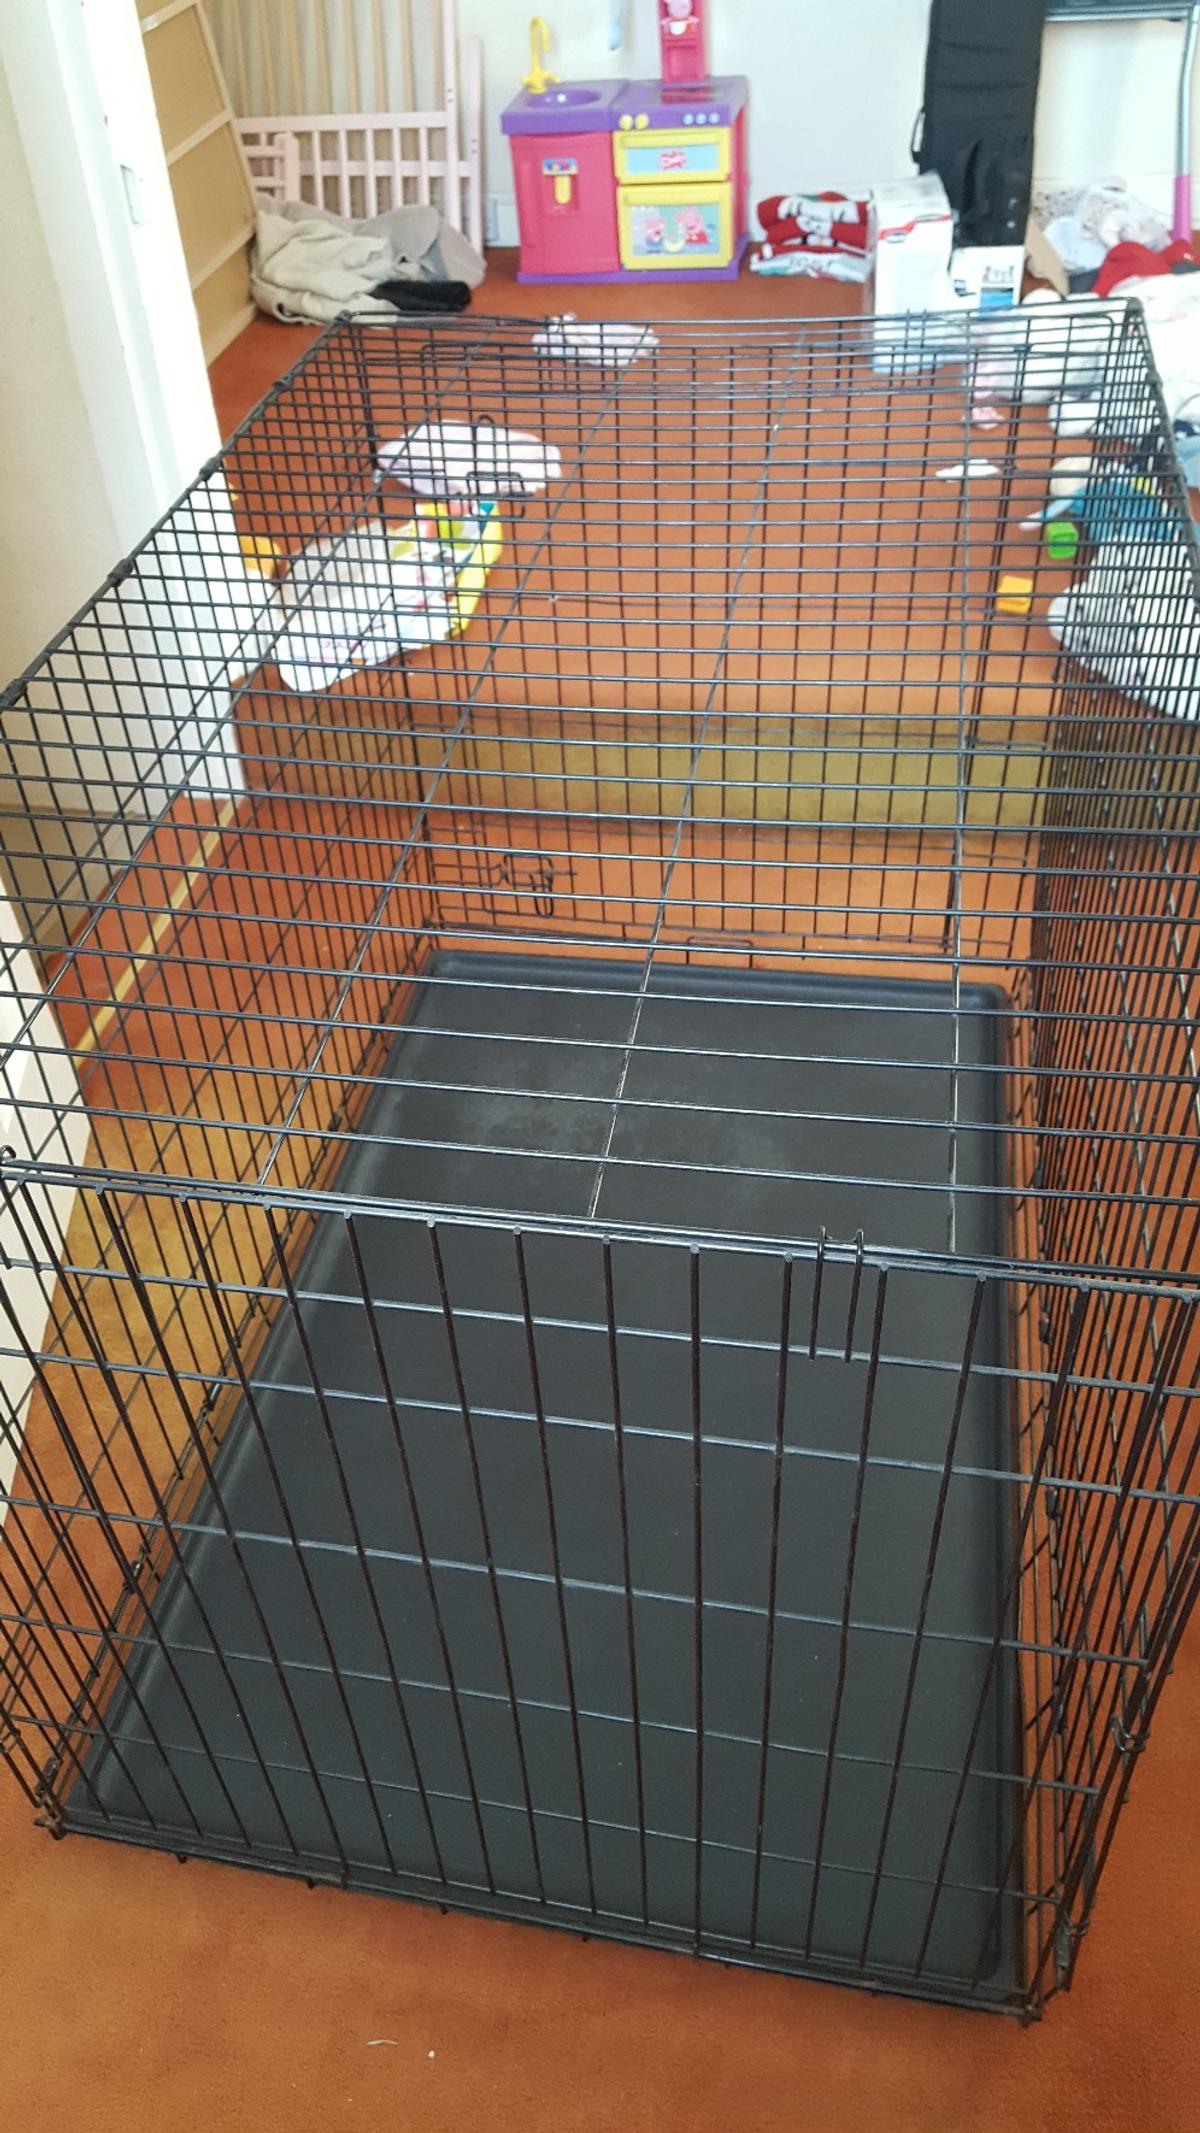 Xl Dog Cage From Pets At Home In Dy10 Wyre Forest For 20 00 For Sale Shpock